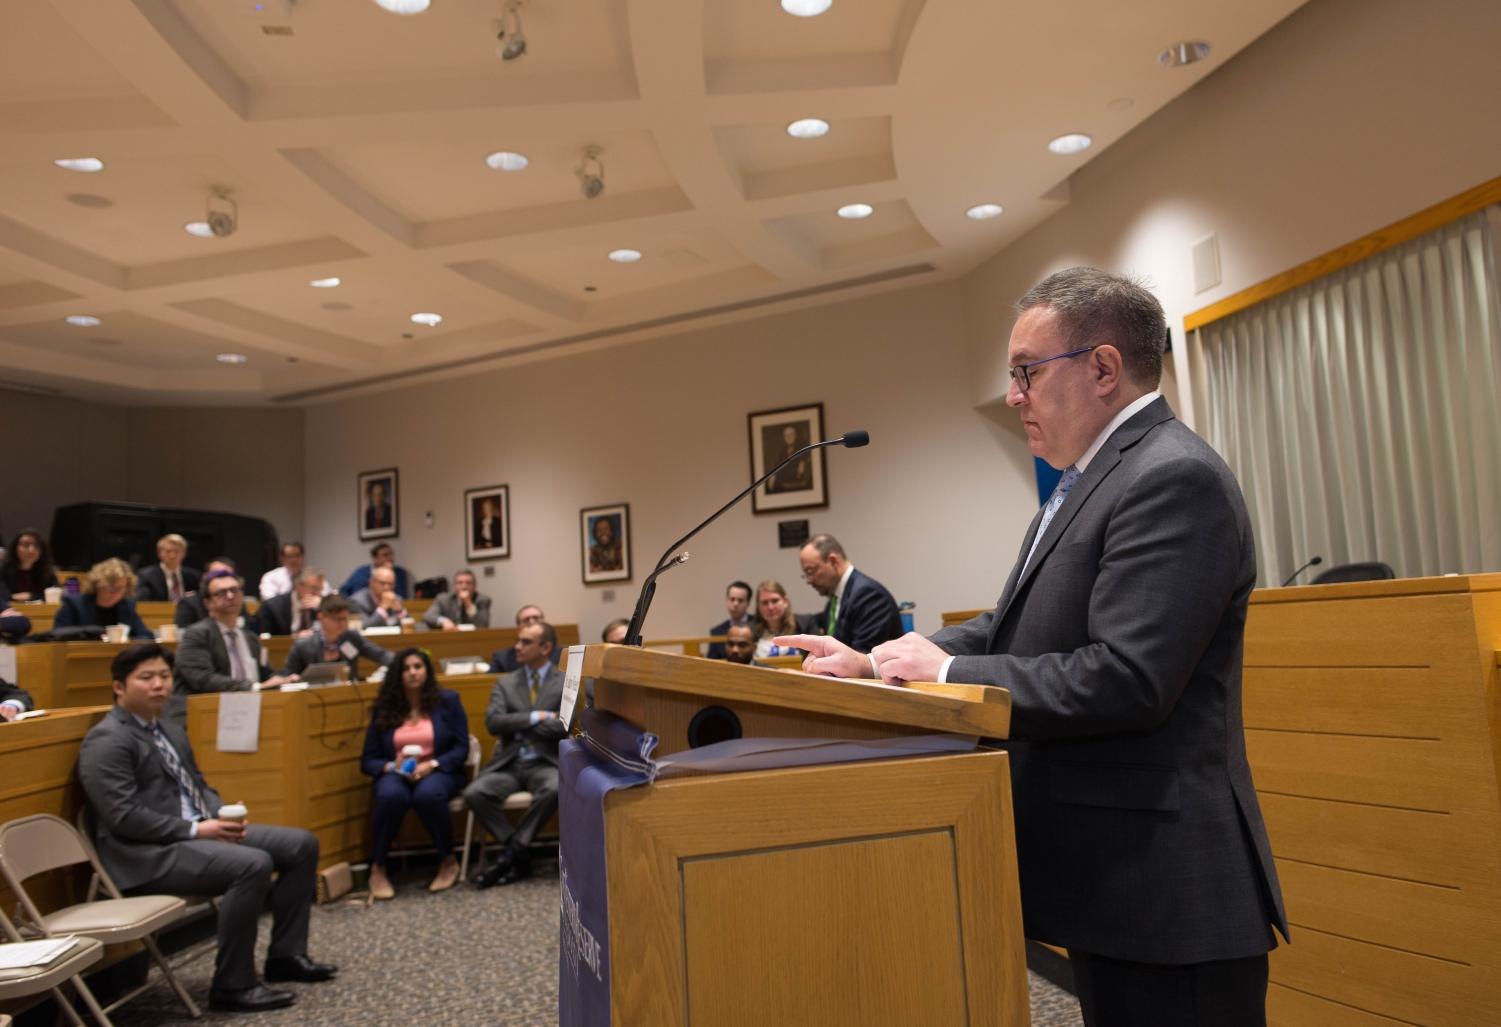 EPA Administrator Andrew Wheeler speaking at the inaugural symposium at the Coleman P. Burke Center for Environmental Law.